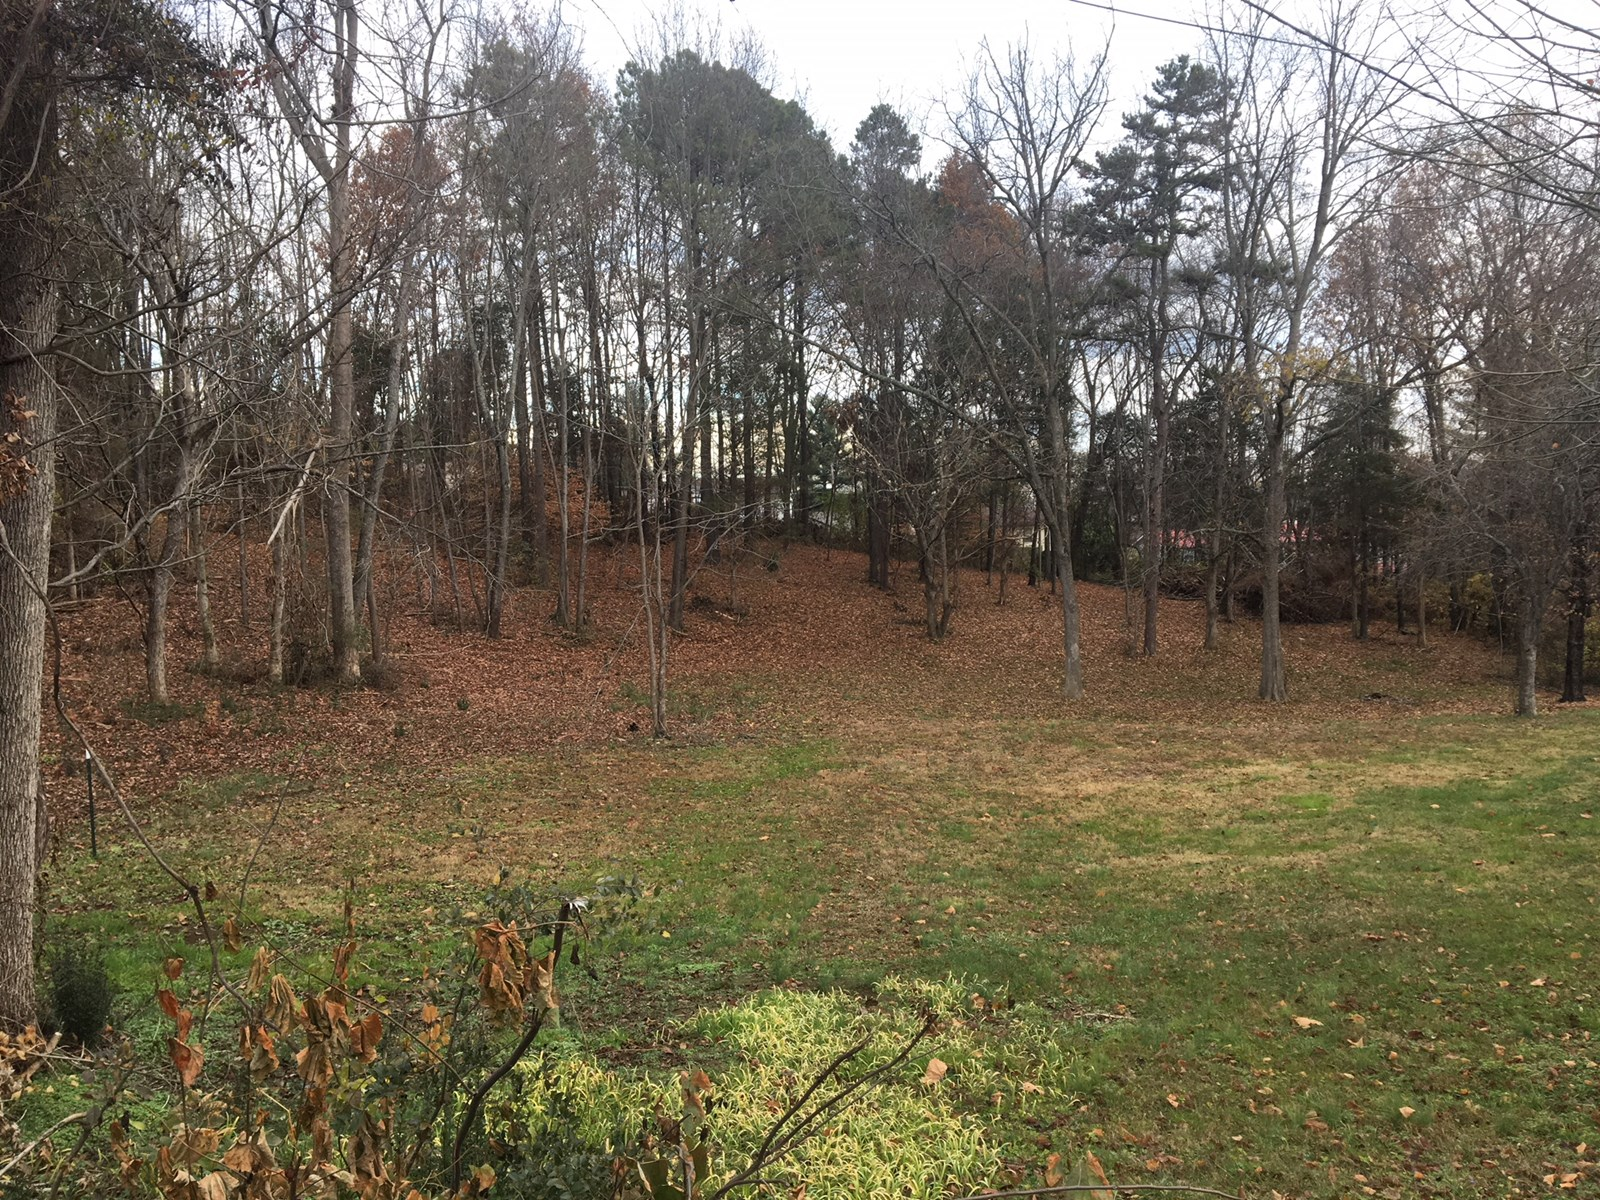 1 Acre Lot in Morristown TN zoned for multi family for sale